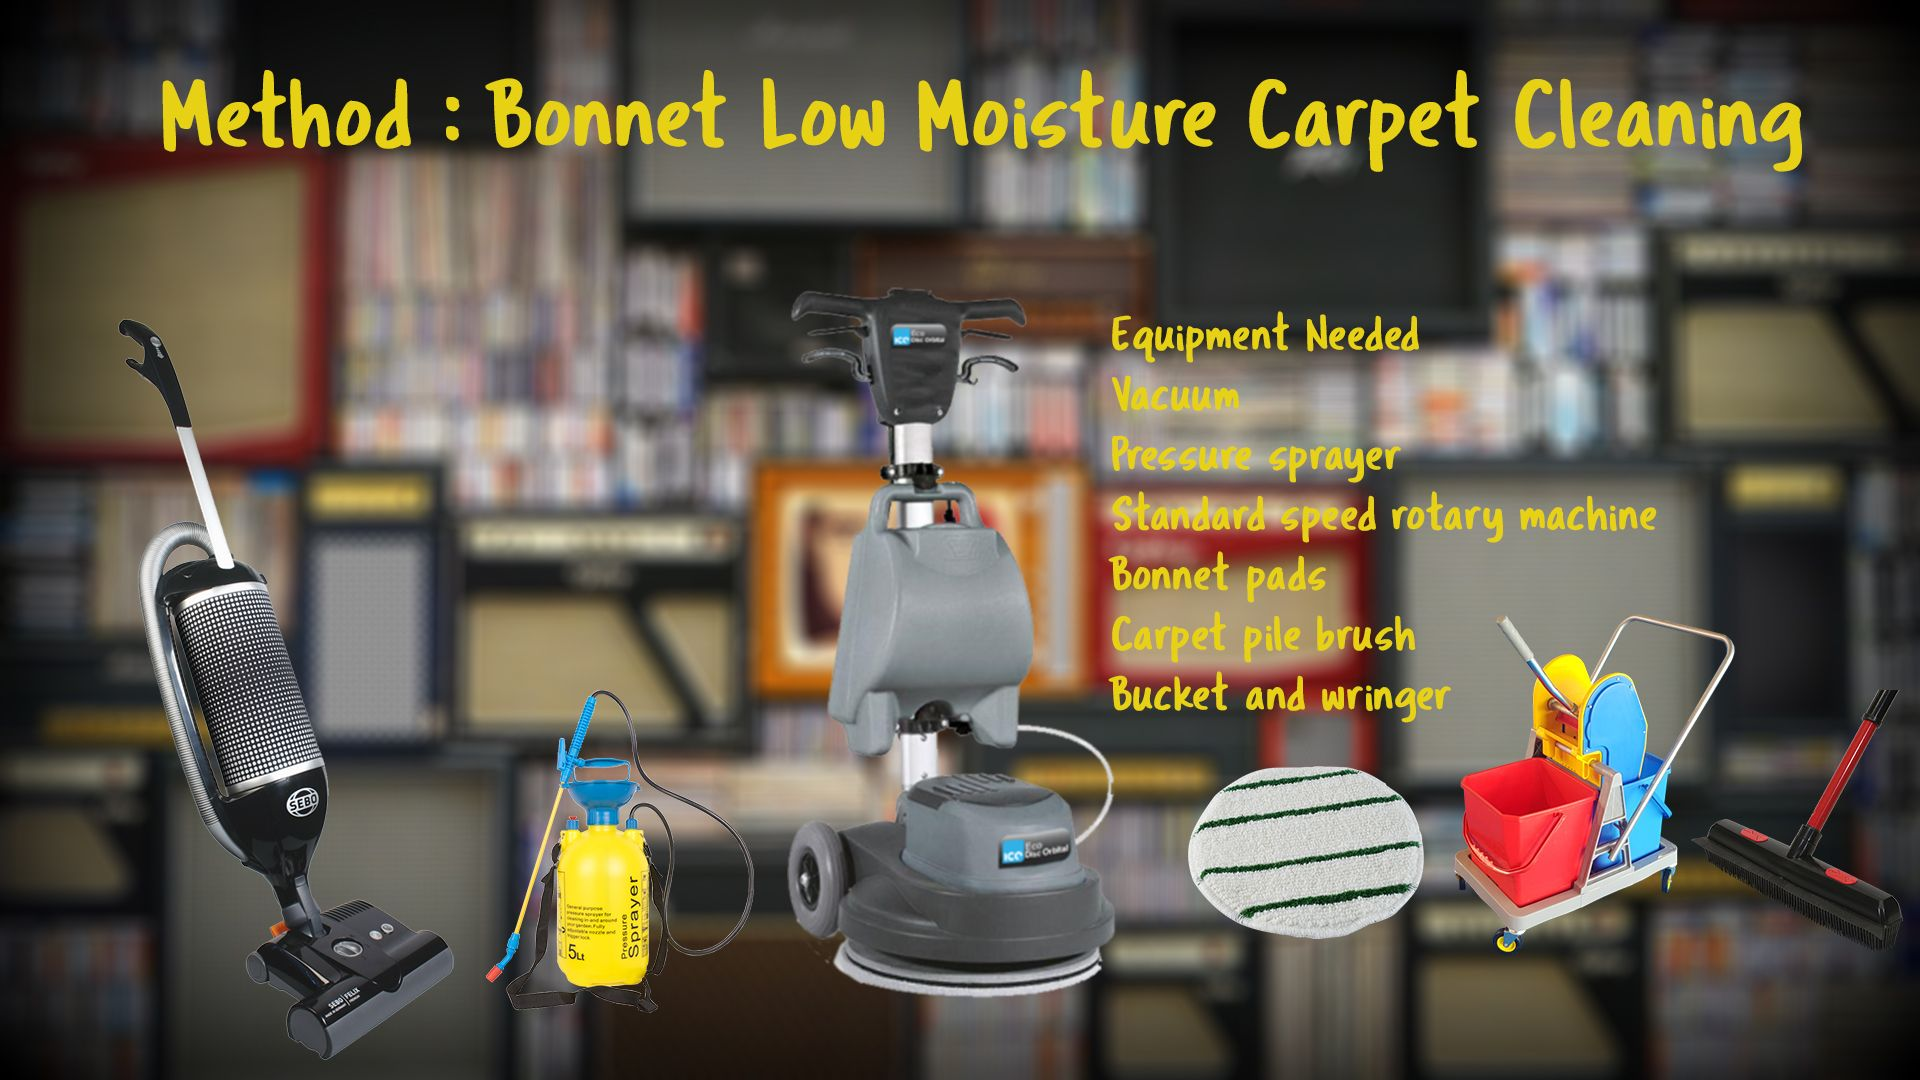 Pin By Ian Harper On Cleanavangelist Carpet Odor Remover How To Clean Carpet Carpet Cleaning Solution